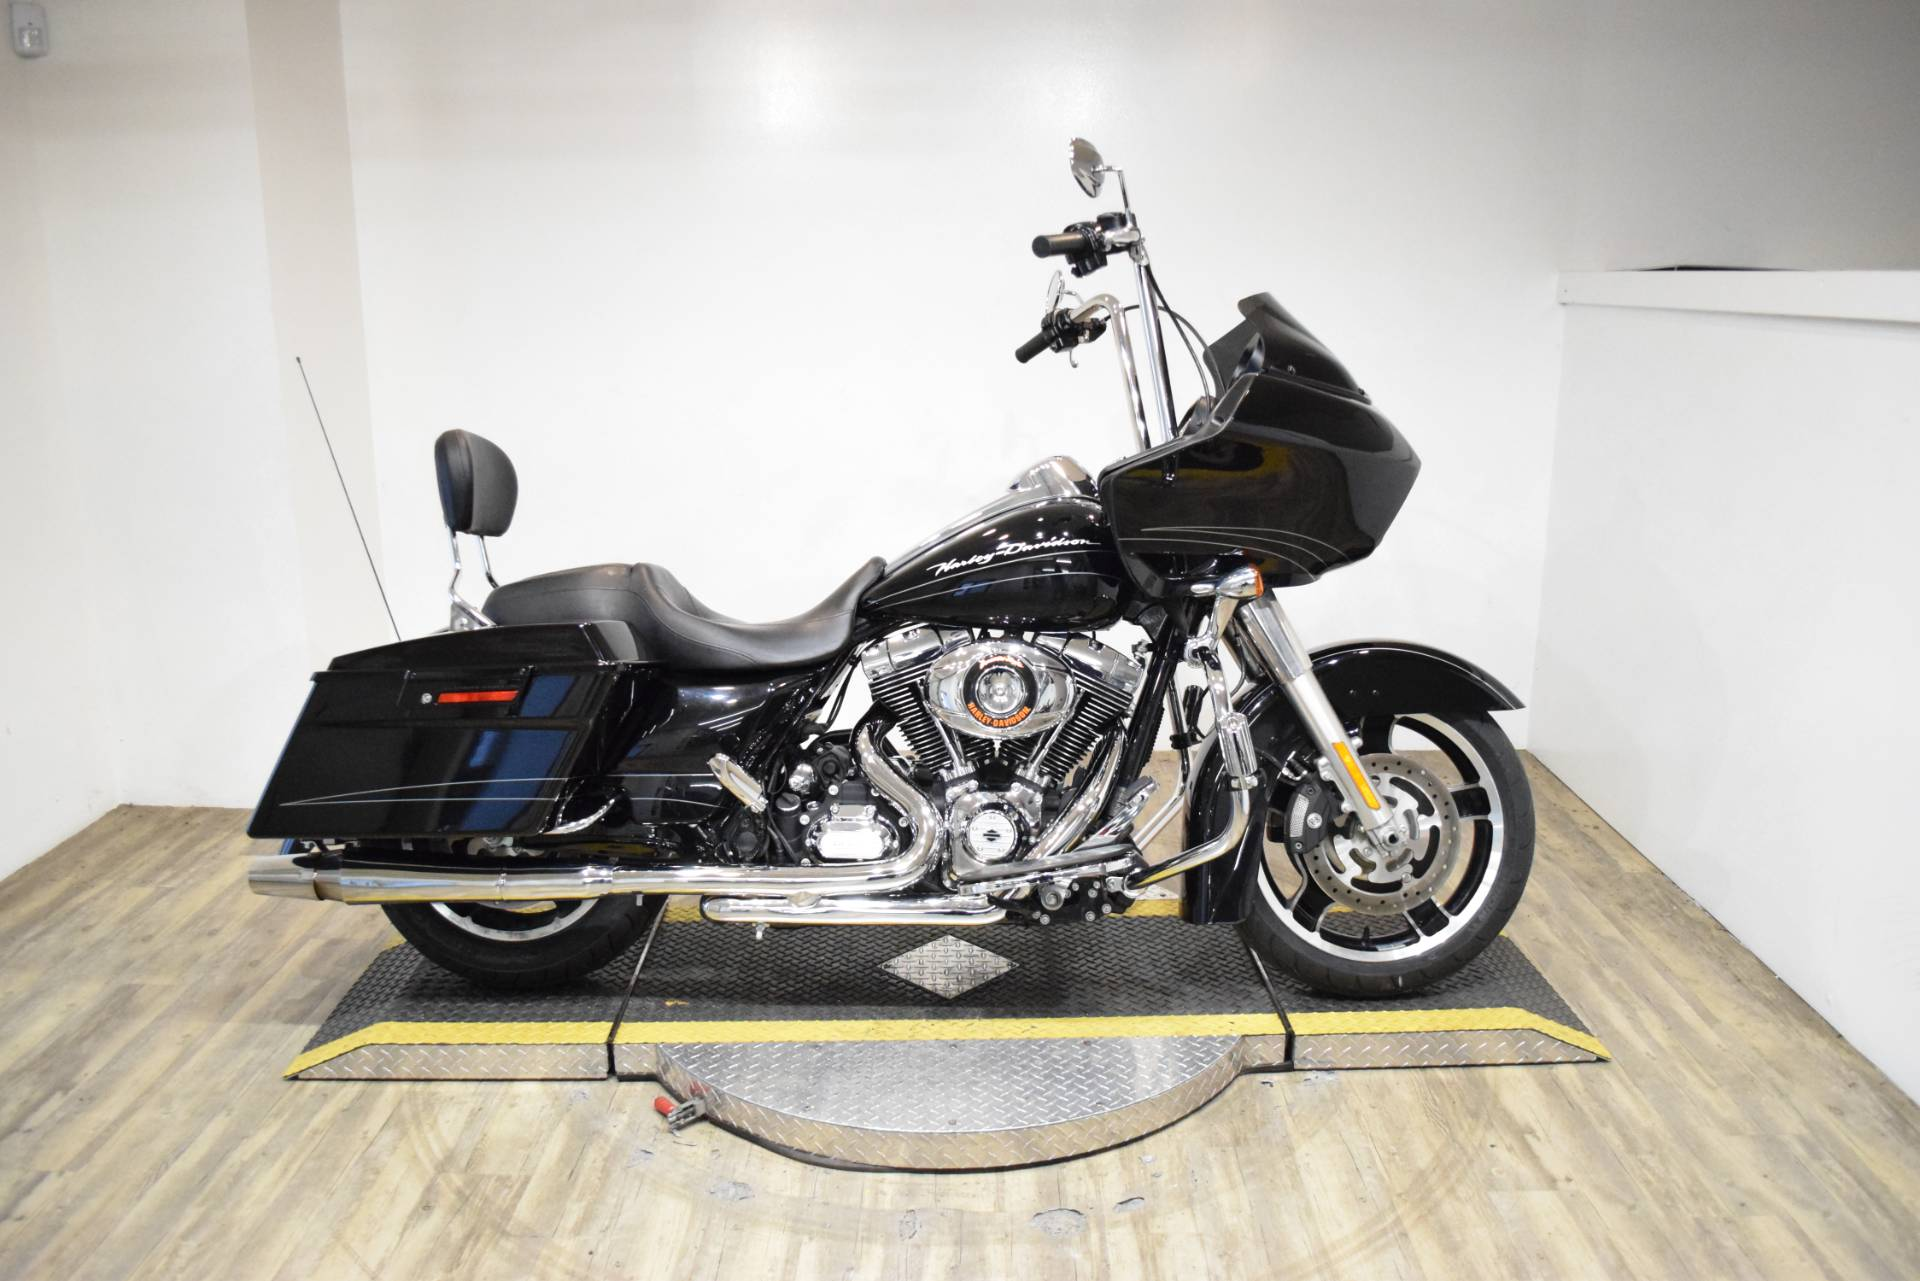 2012 Harley-Davidson Road Glide® Custom in Wauconda, Illinois - Photo 1